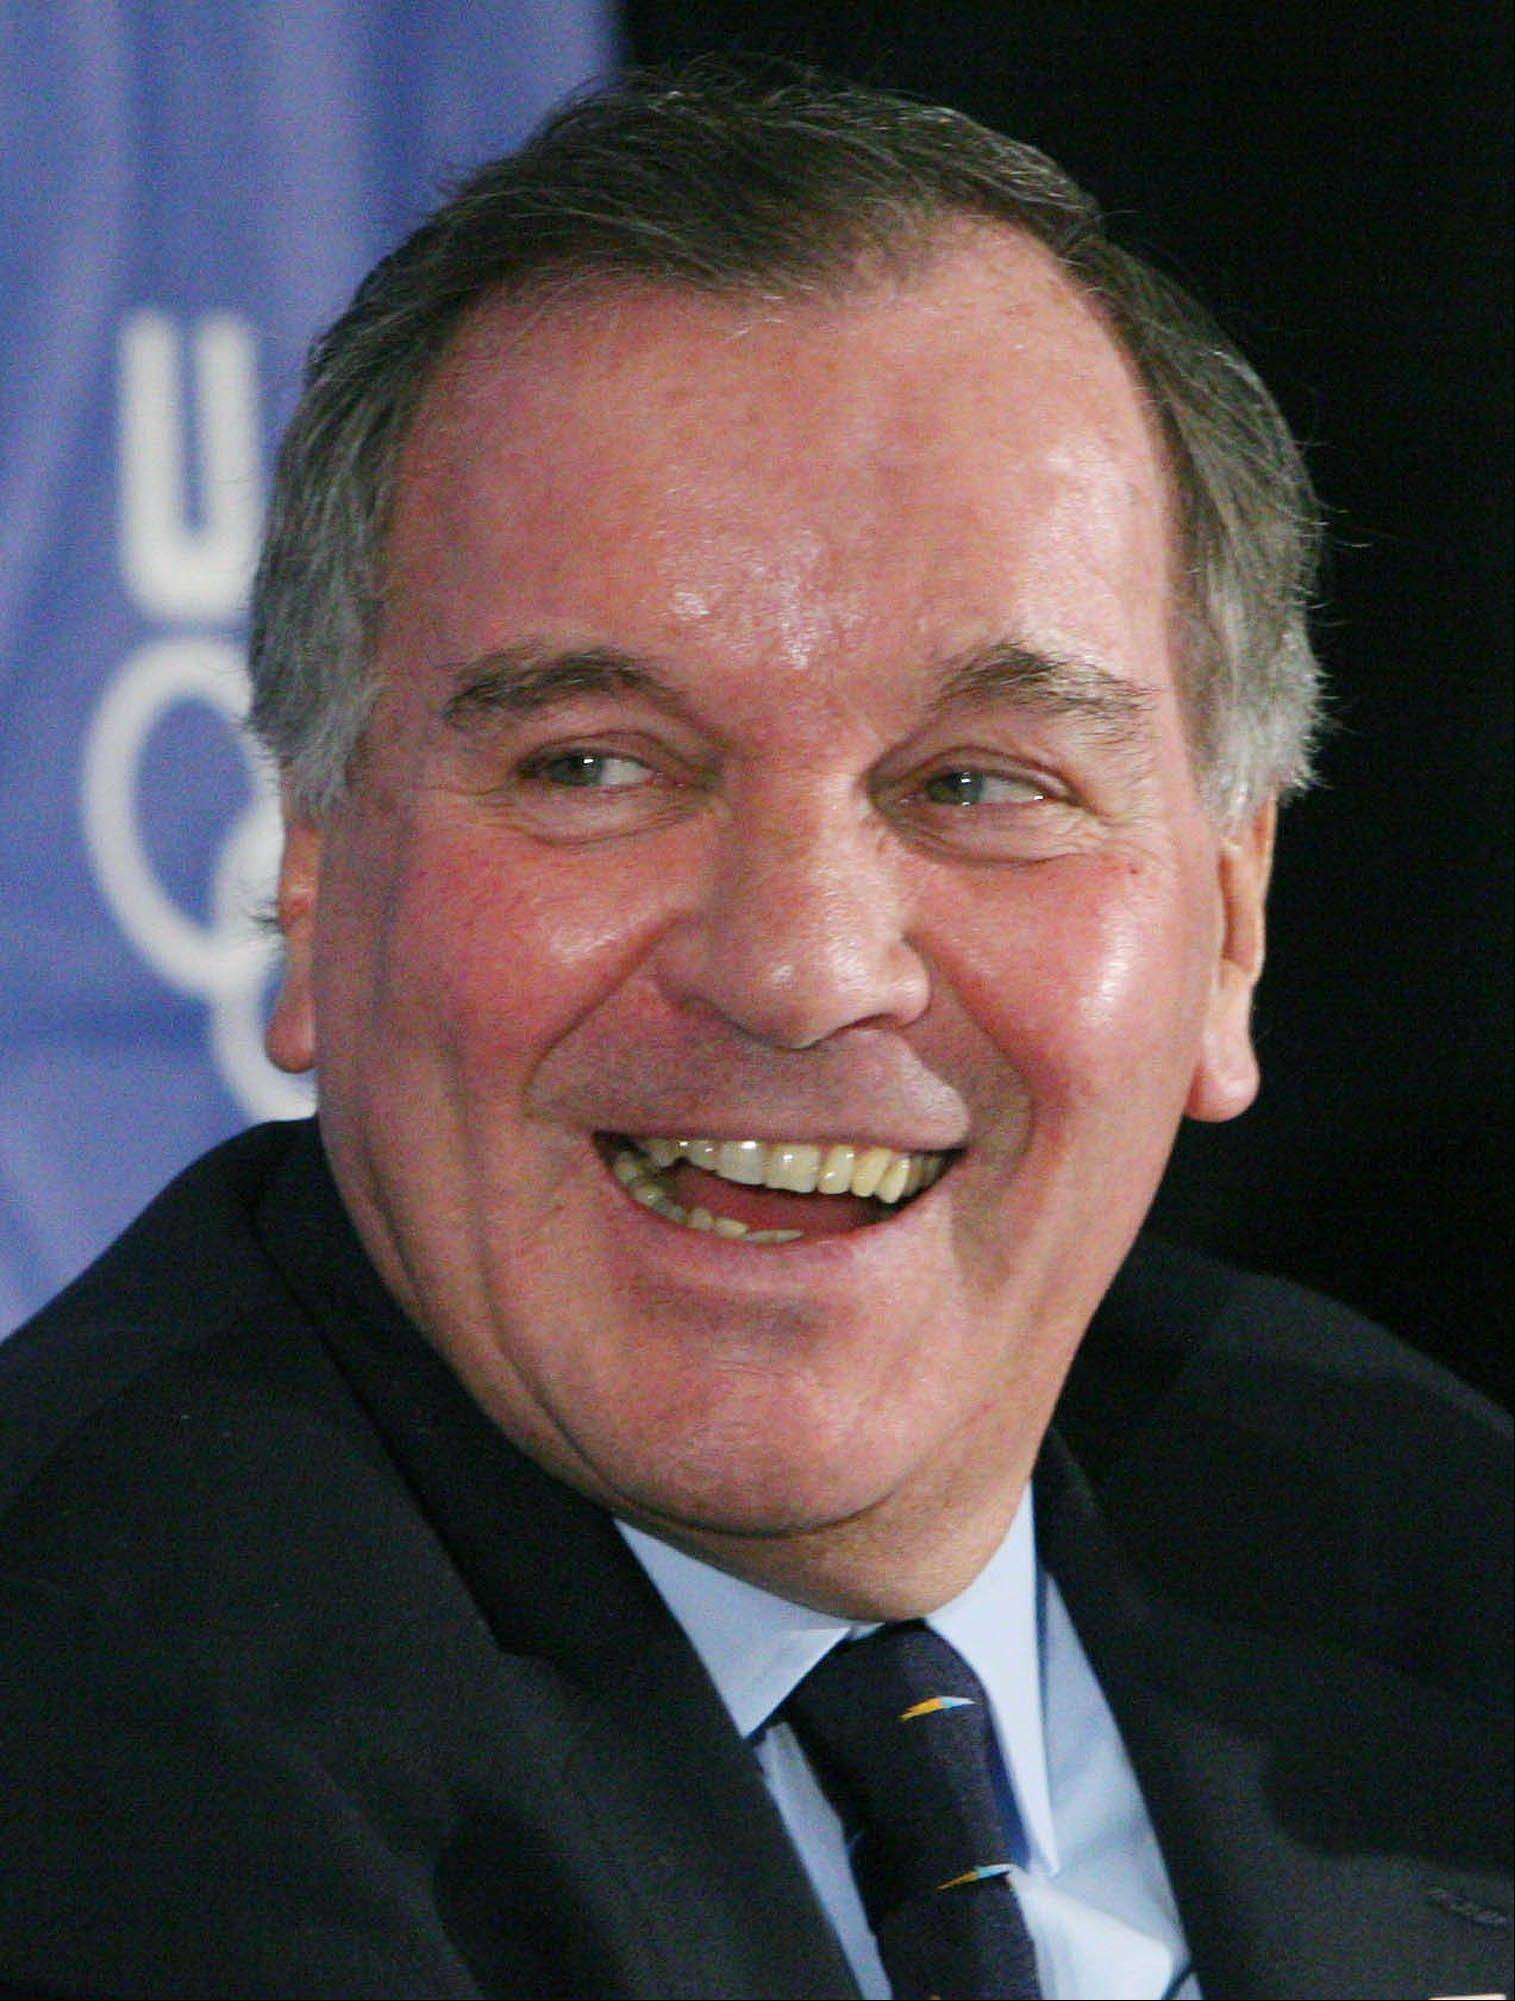 Chicago Mayor Richard M. Daley smiles as he speaks with reporters after Chicago's presentation to the U.S. Olympic Committee, in Washington.